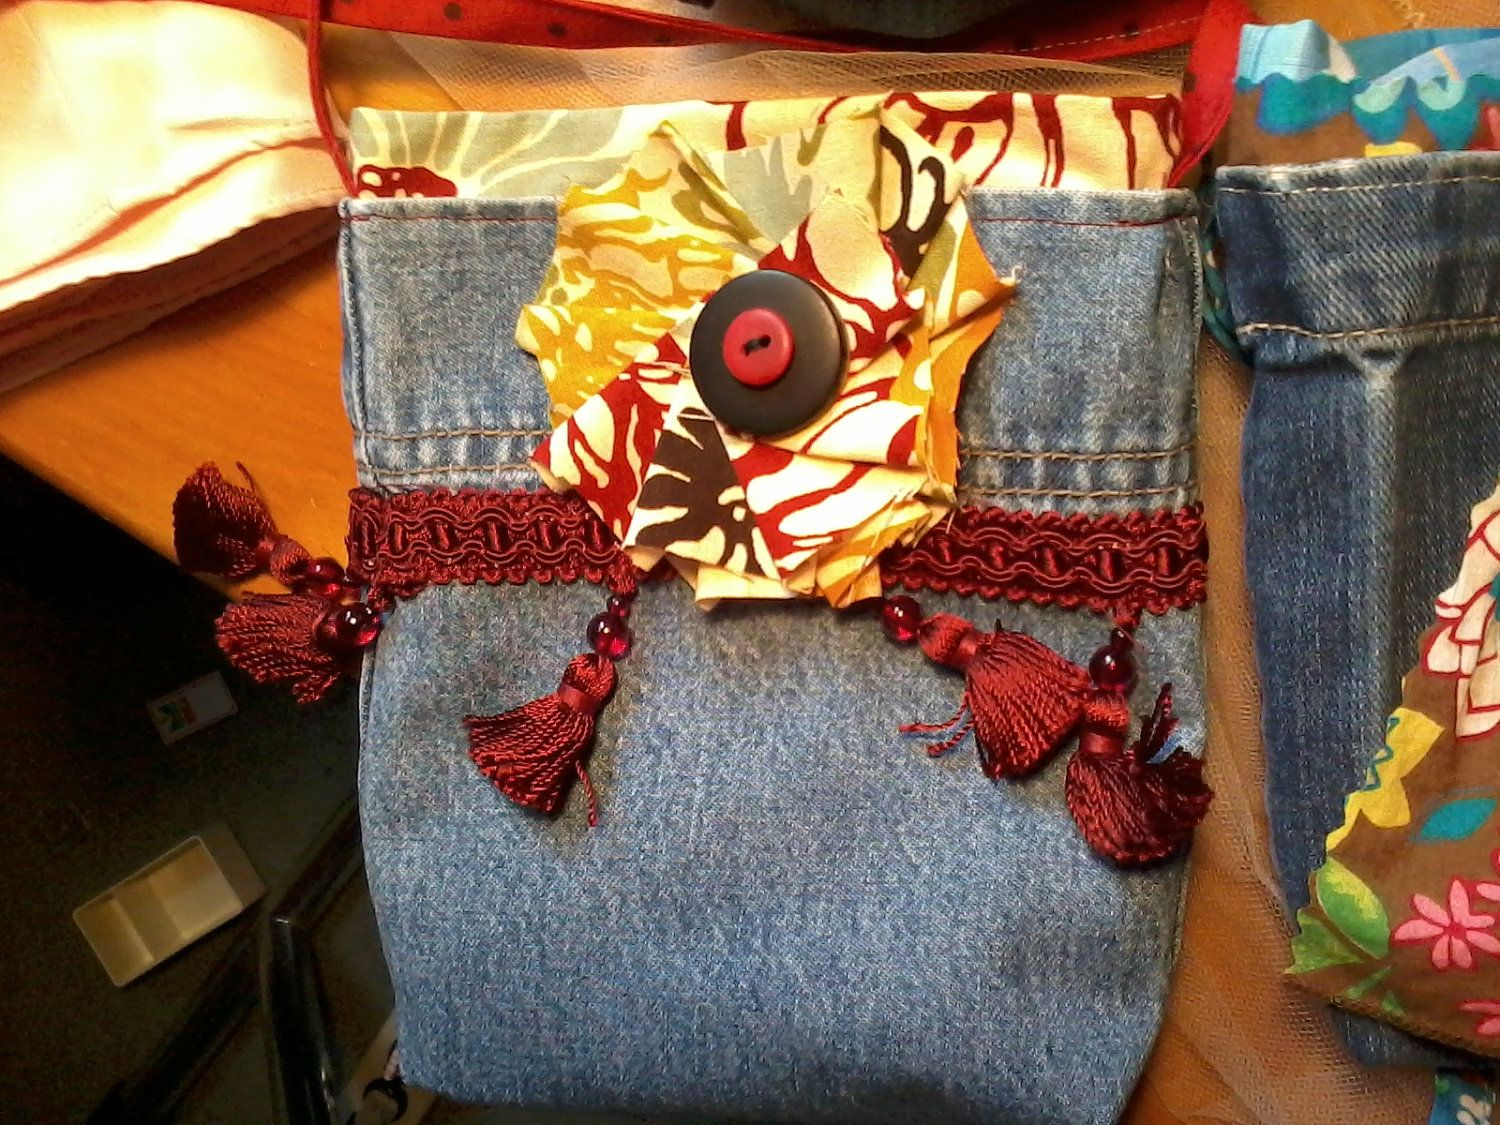 Toddler Blue Jean Purse Floral Gold Orange Red Dark Brown Blue with Green Leaves Red Brown Polka Dots Strap with Fabric Flower and Button.. $20.00, via Etsy.